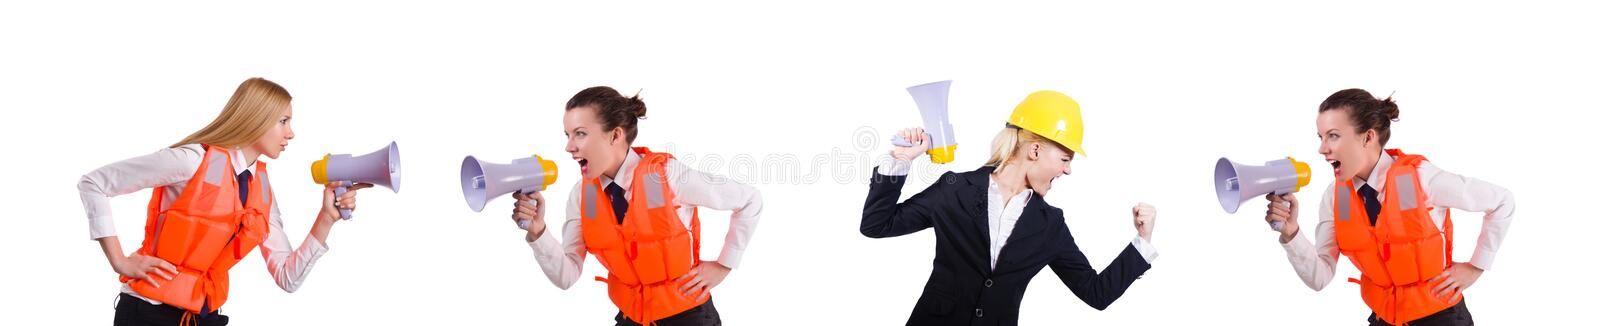 Pair shouting at each other on white royalty free stock photo